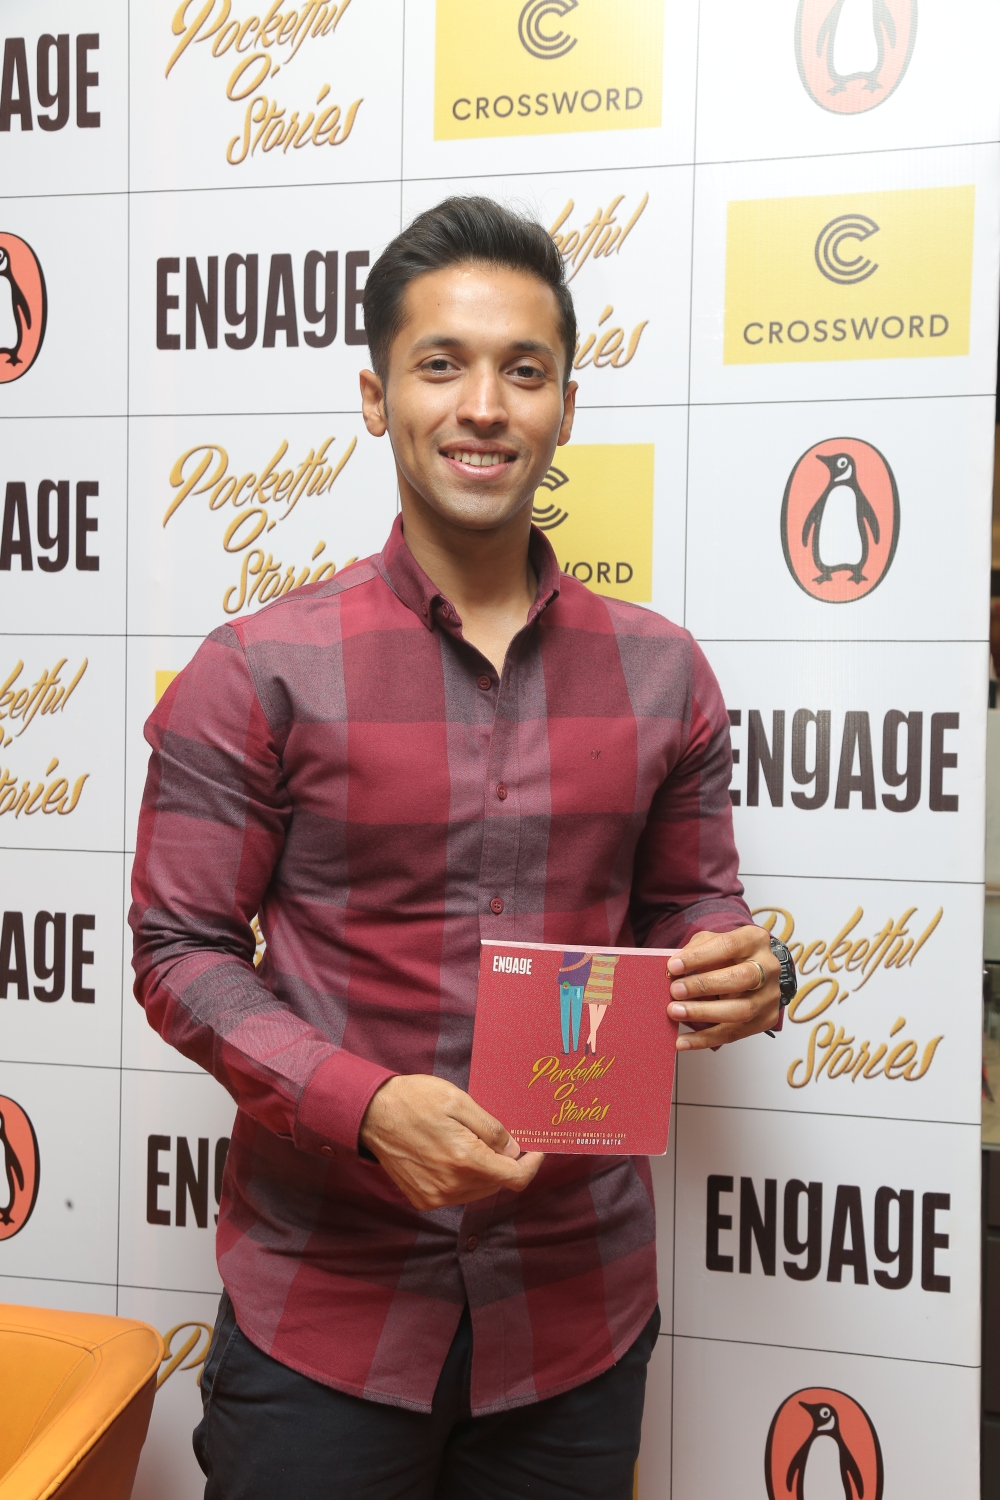 Author Durjoy Datta with the newly curated book Pocketful o'stories at Crossword Bookstores Malad.